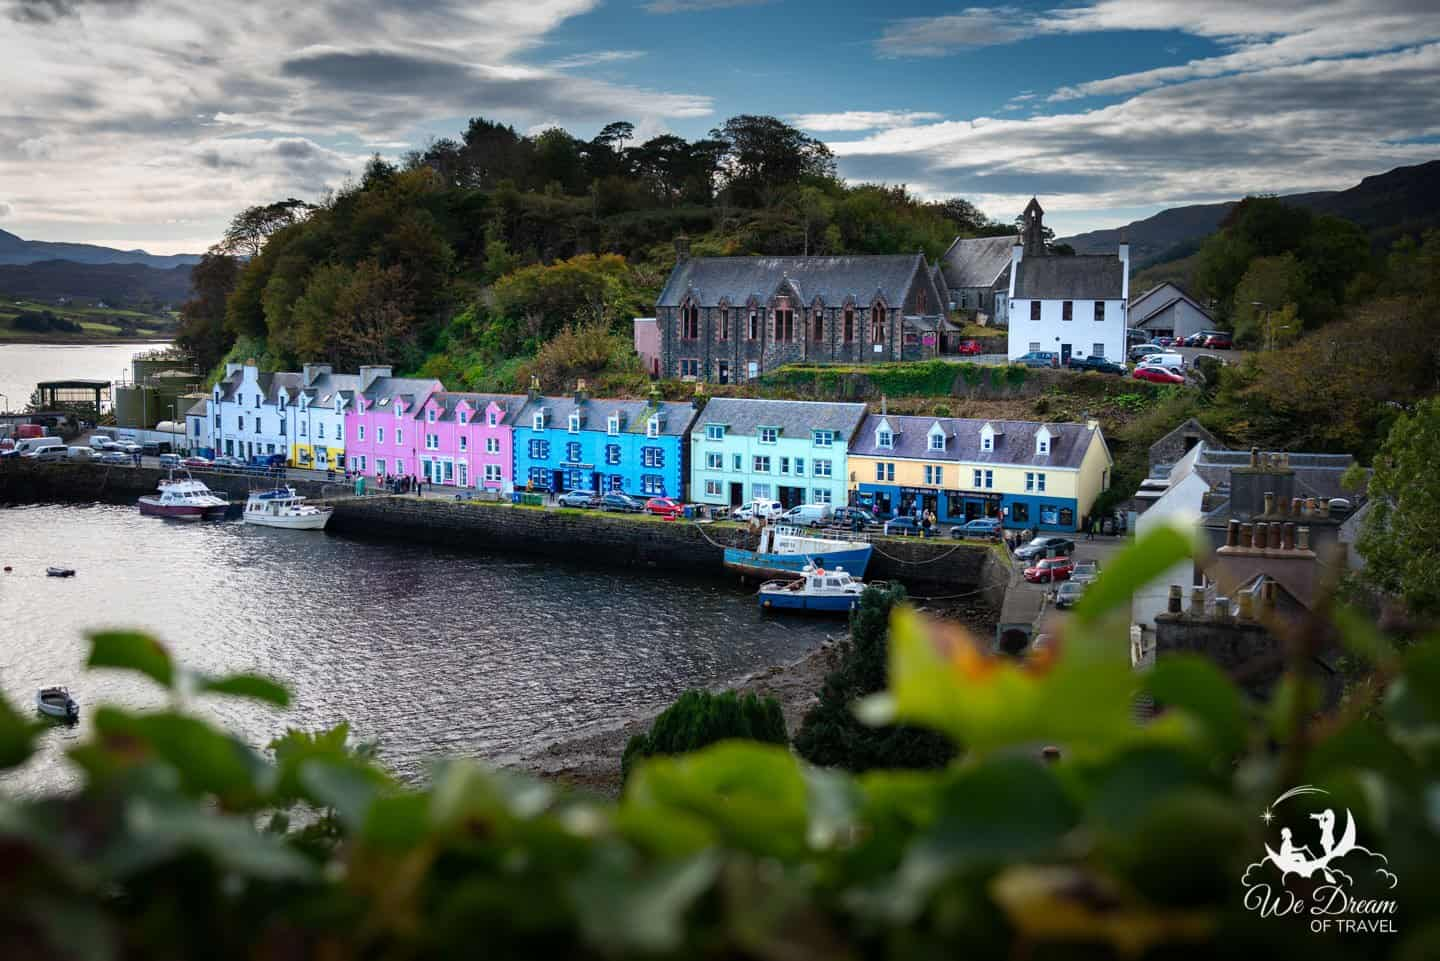 Portree is not only the most conveniently located place to stay on Scotland's Isle of Skye, but the most photogenic as well.